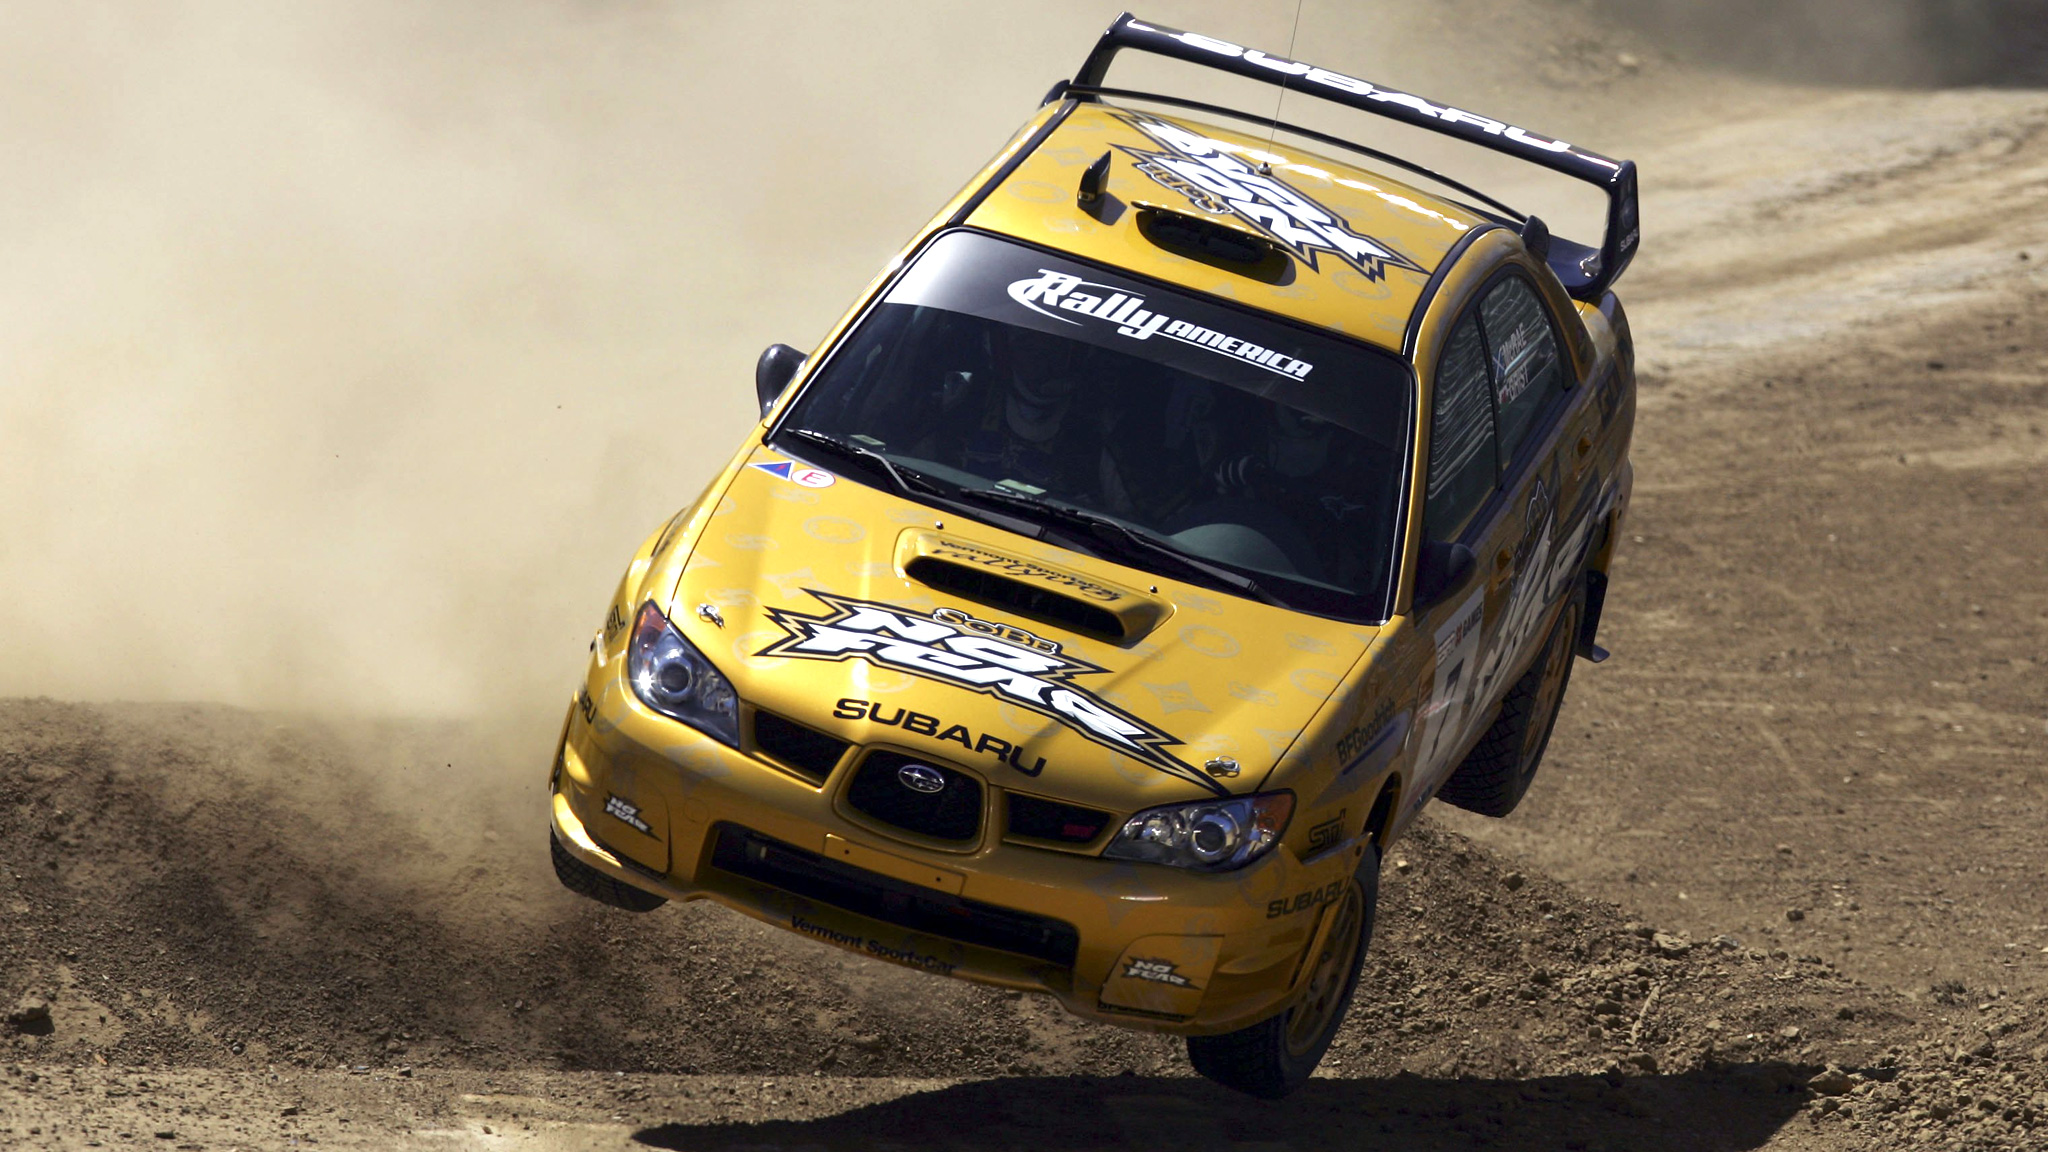 Rally Racing Joins X, Colin McRae Rolls, 2006